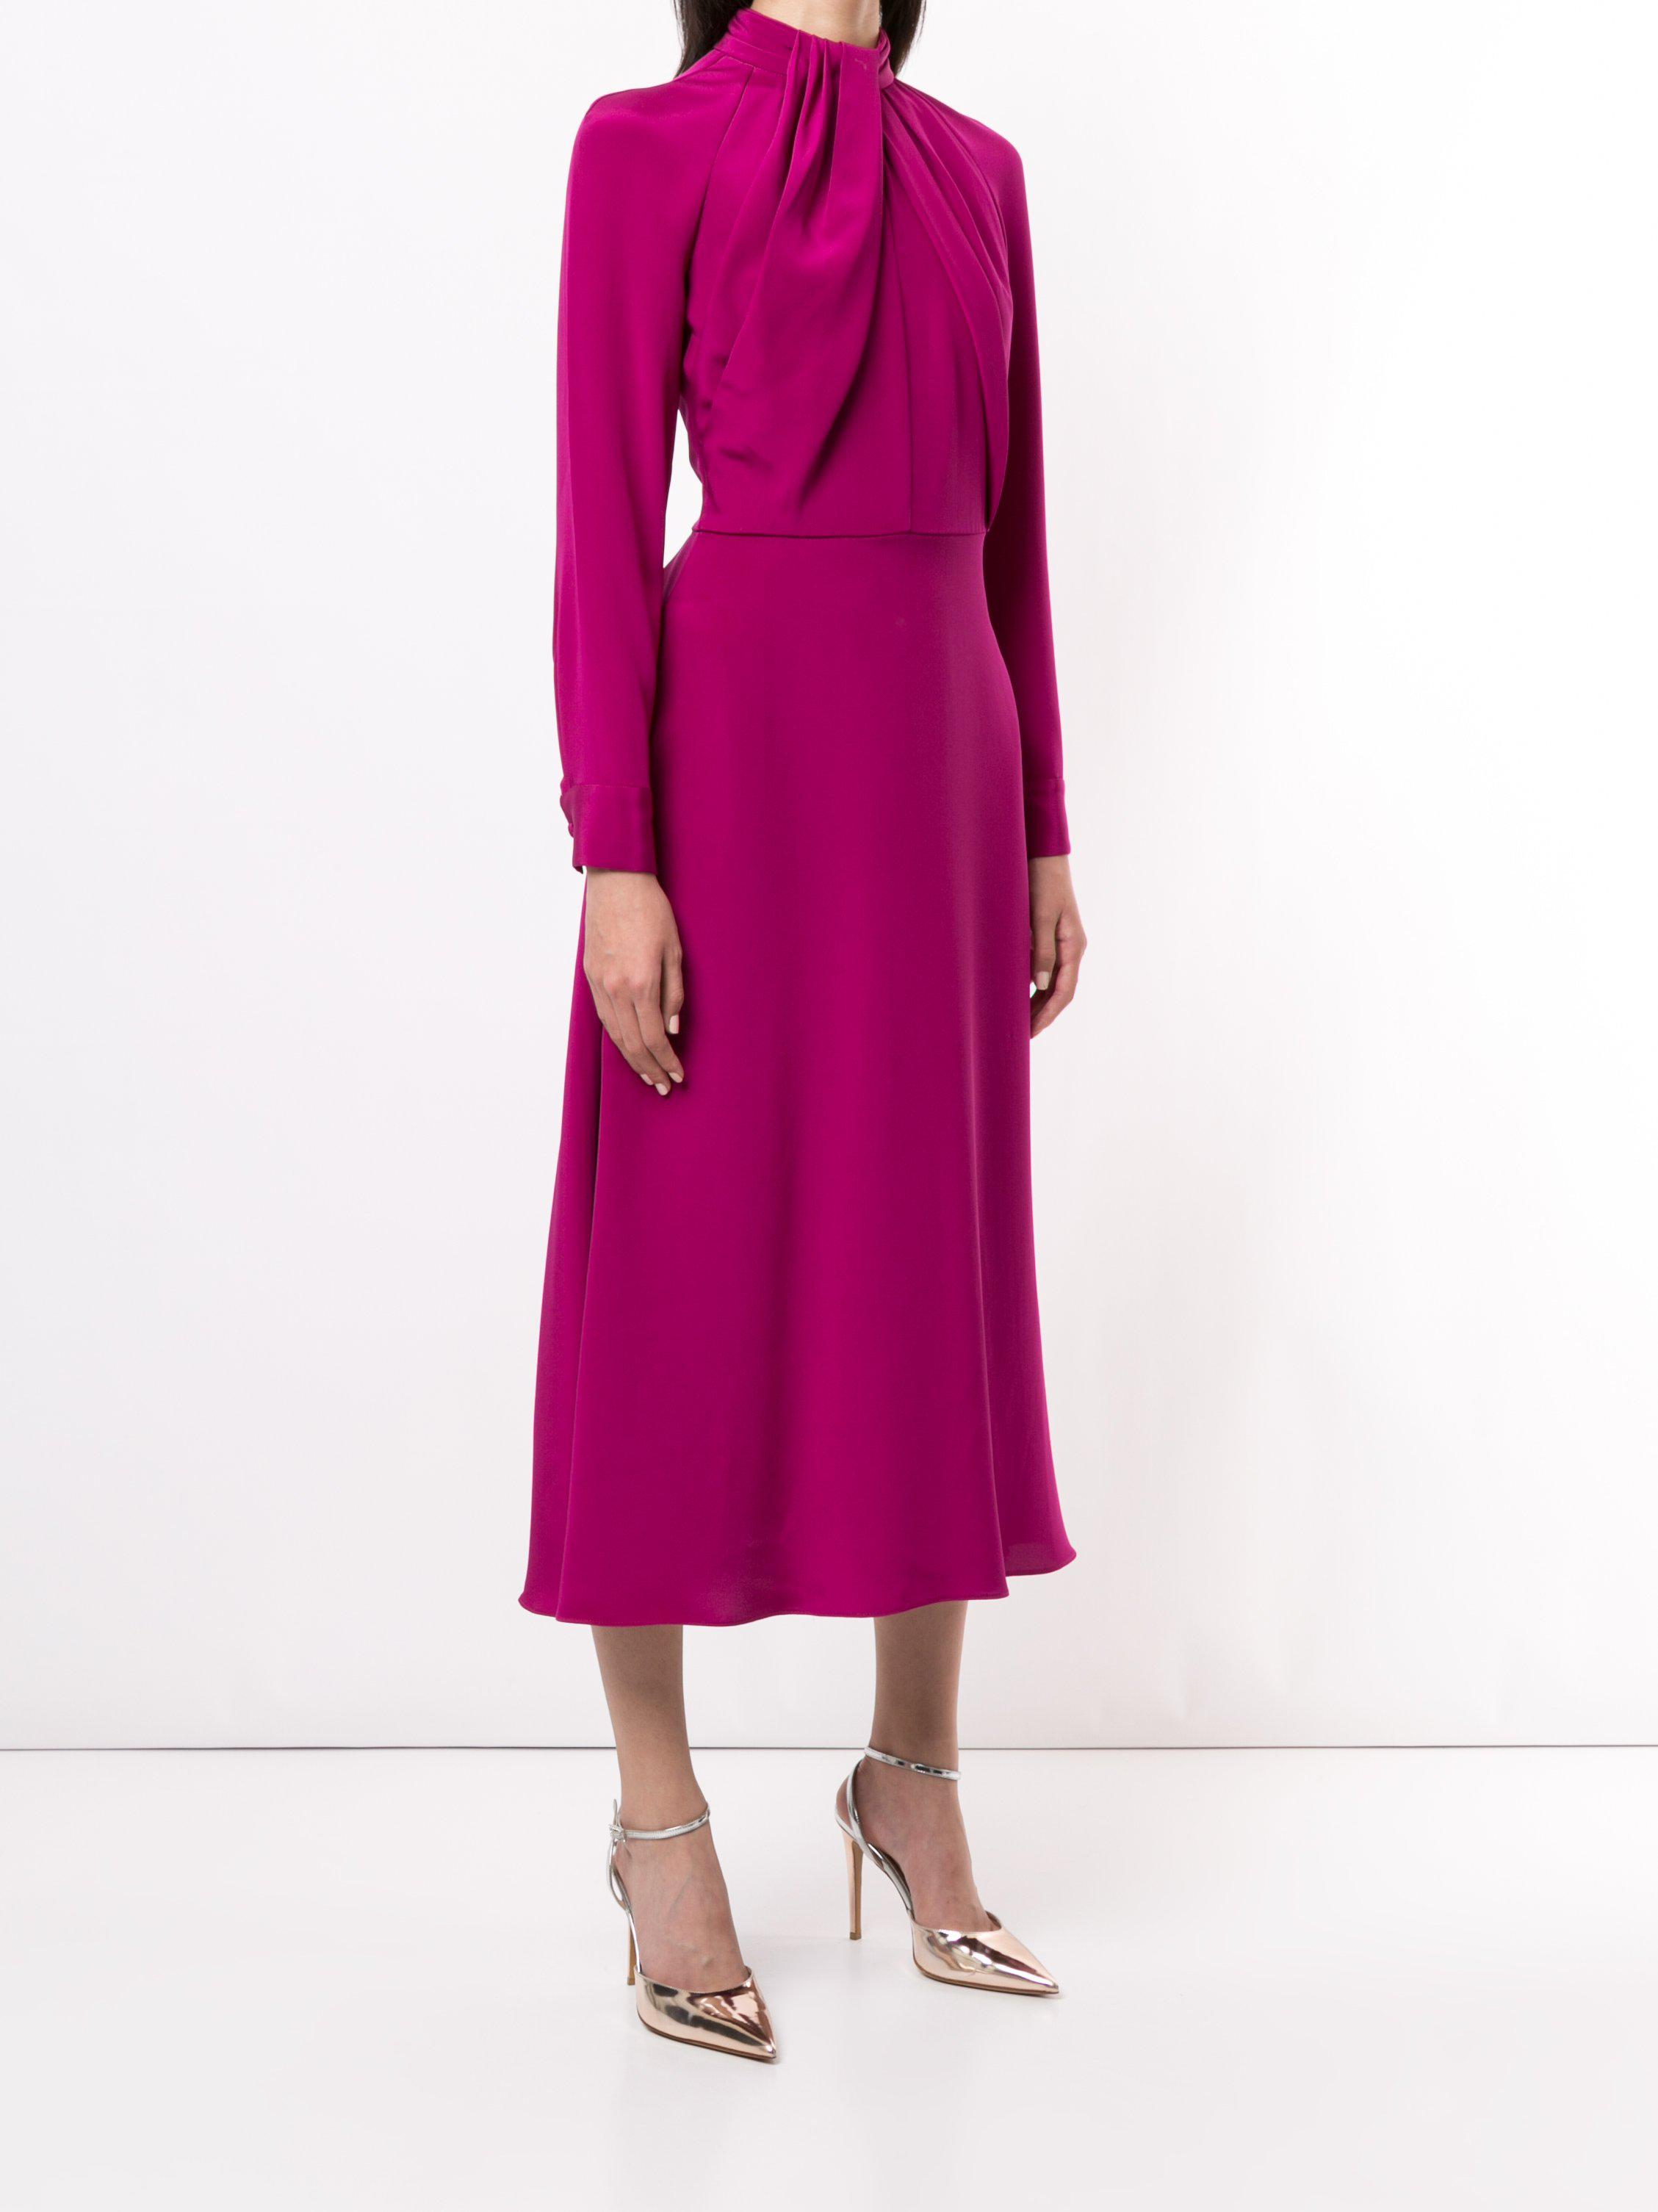 LONG SLEEVE DRESS WITH NECK TWIST IN SILK CREPE 2